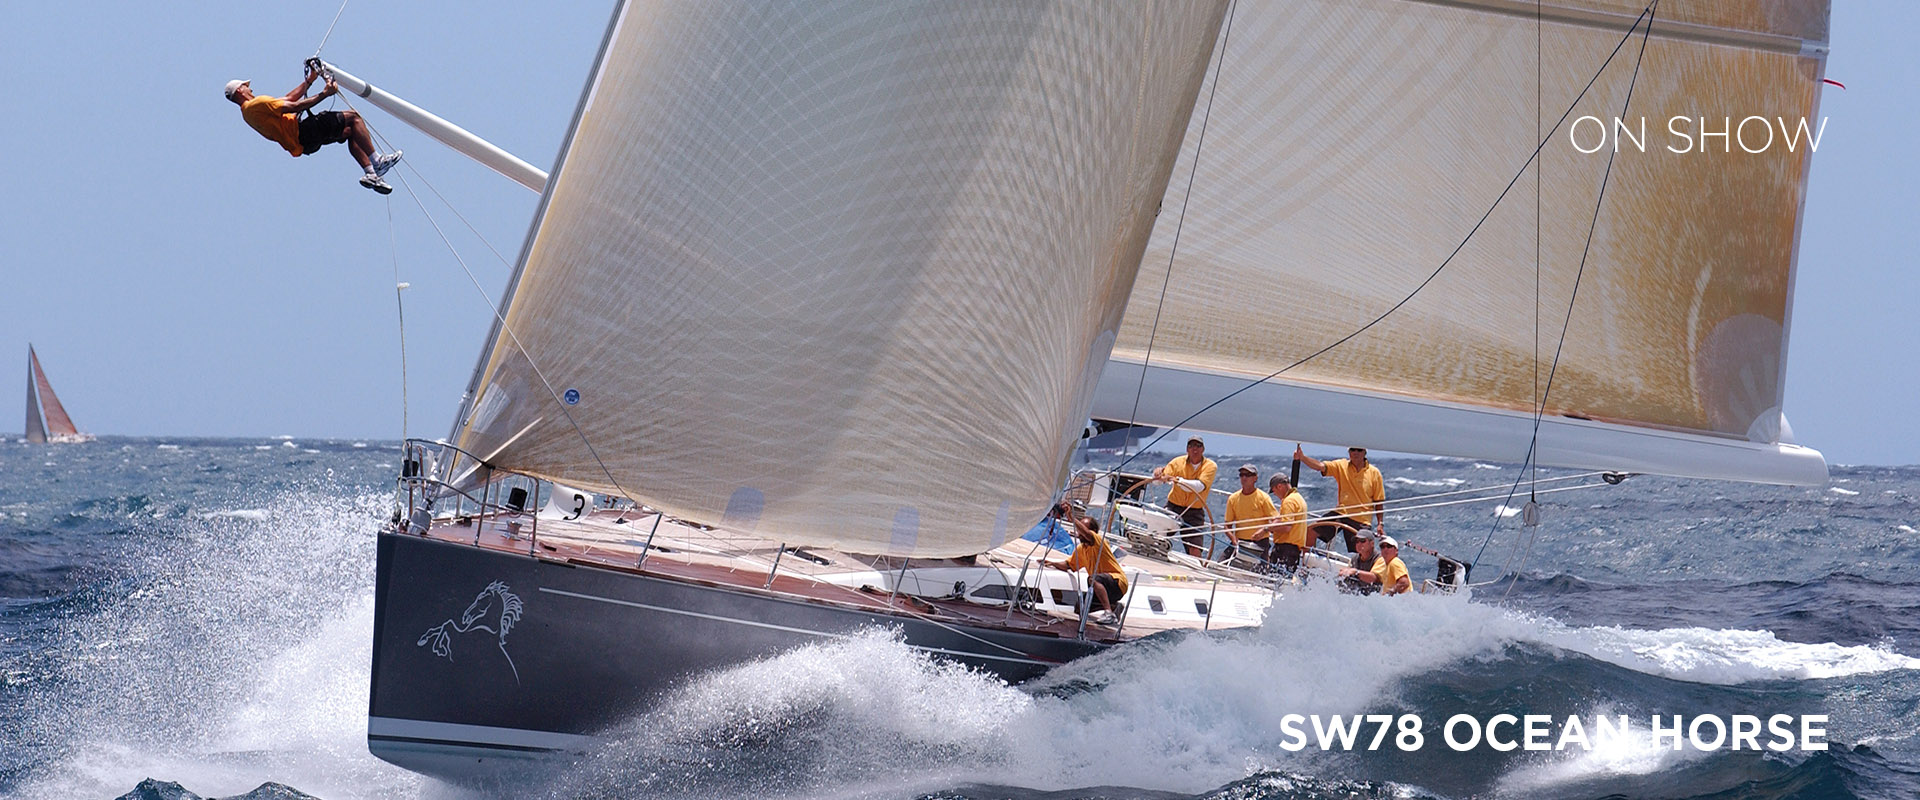 SOUTHERN WIND YACHTS AT PALMA SUPERYACHT SHOW